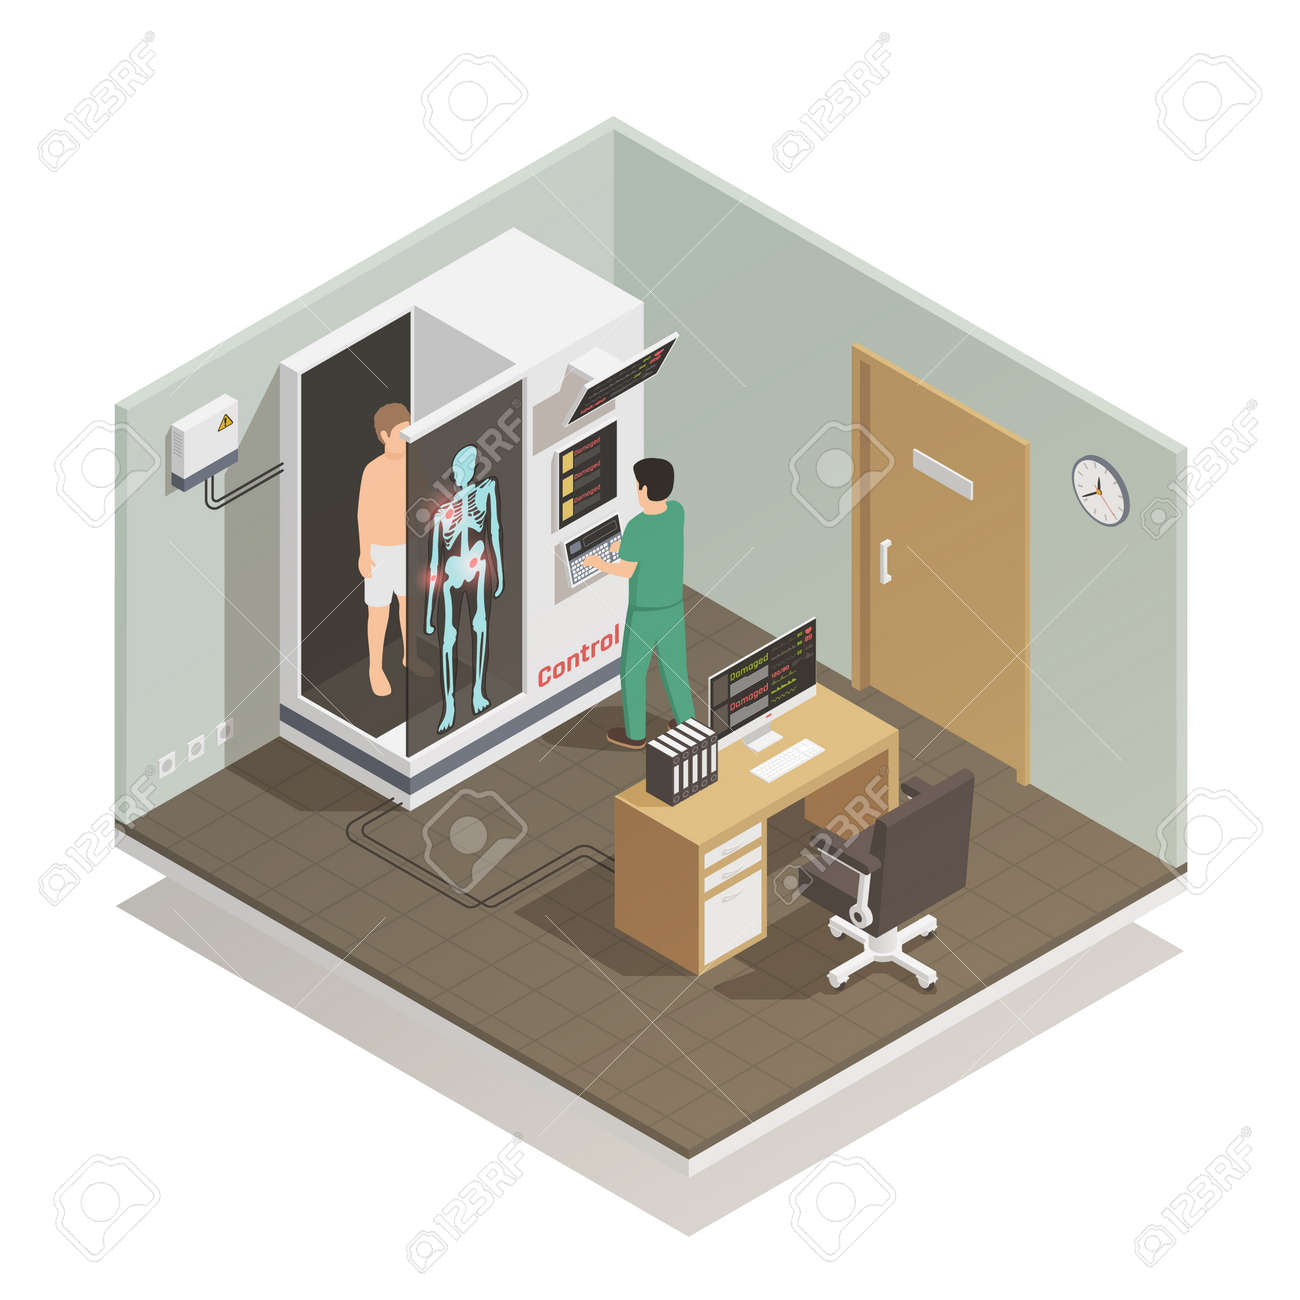 Advance electronic robotic system for future automated diagnostic tasks isometric composition with medical technician patient vector illustration - 166130608